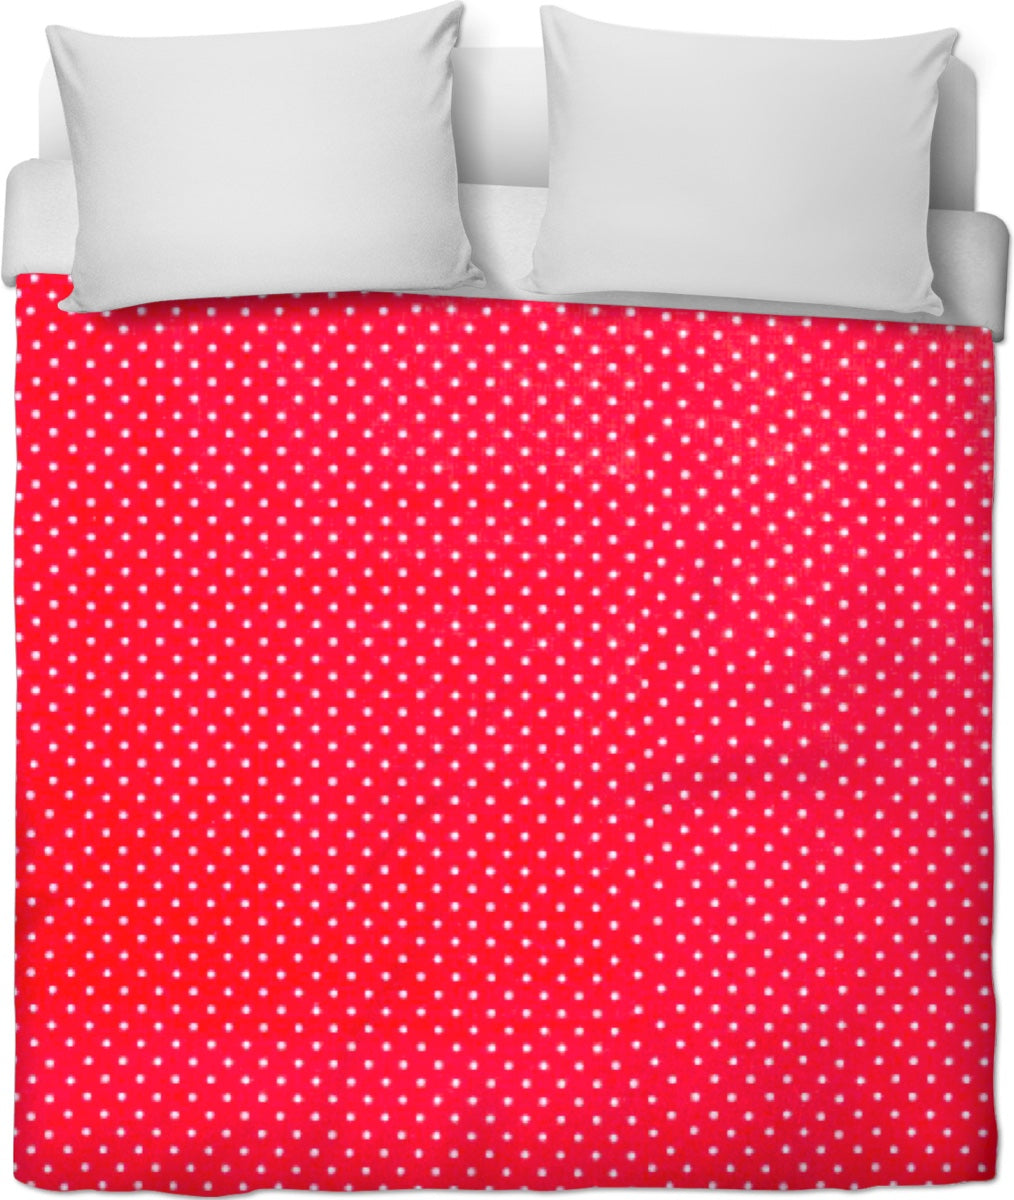 Red And White Polka Dot Duvet Cover